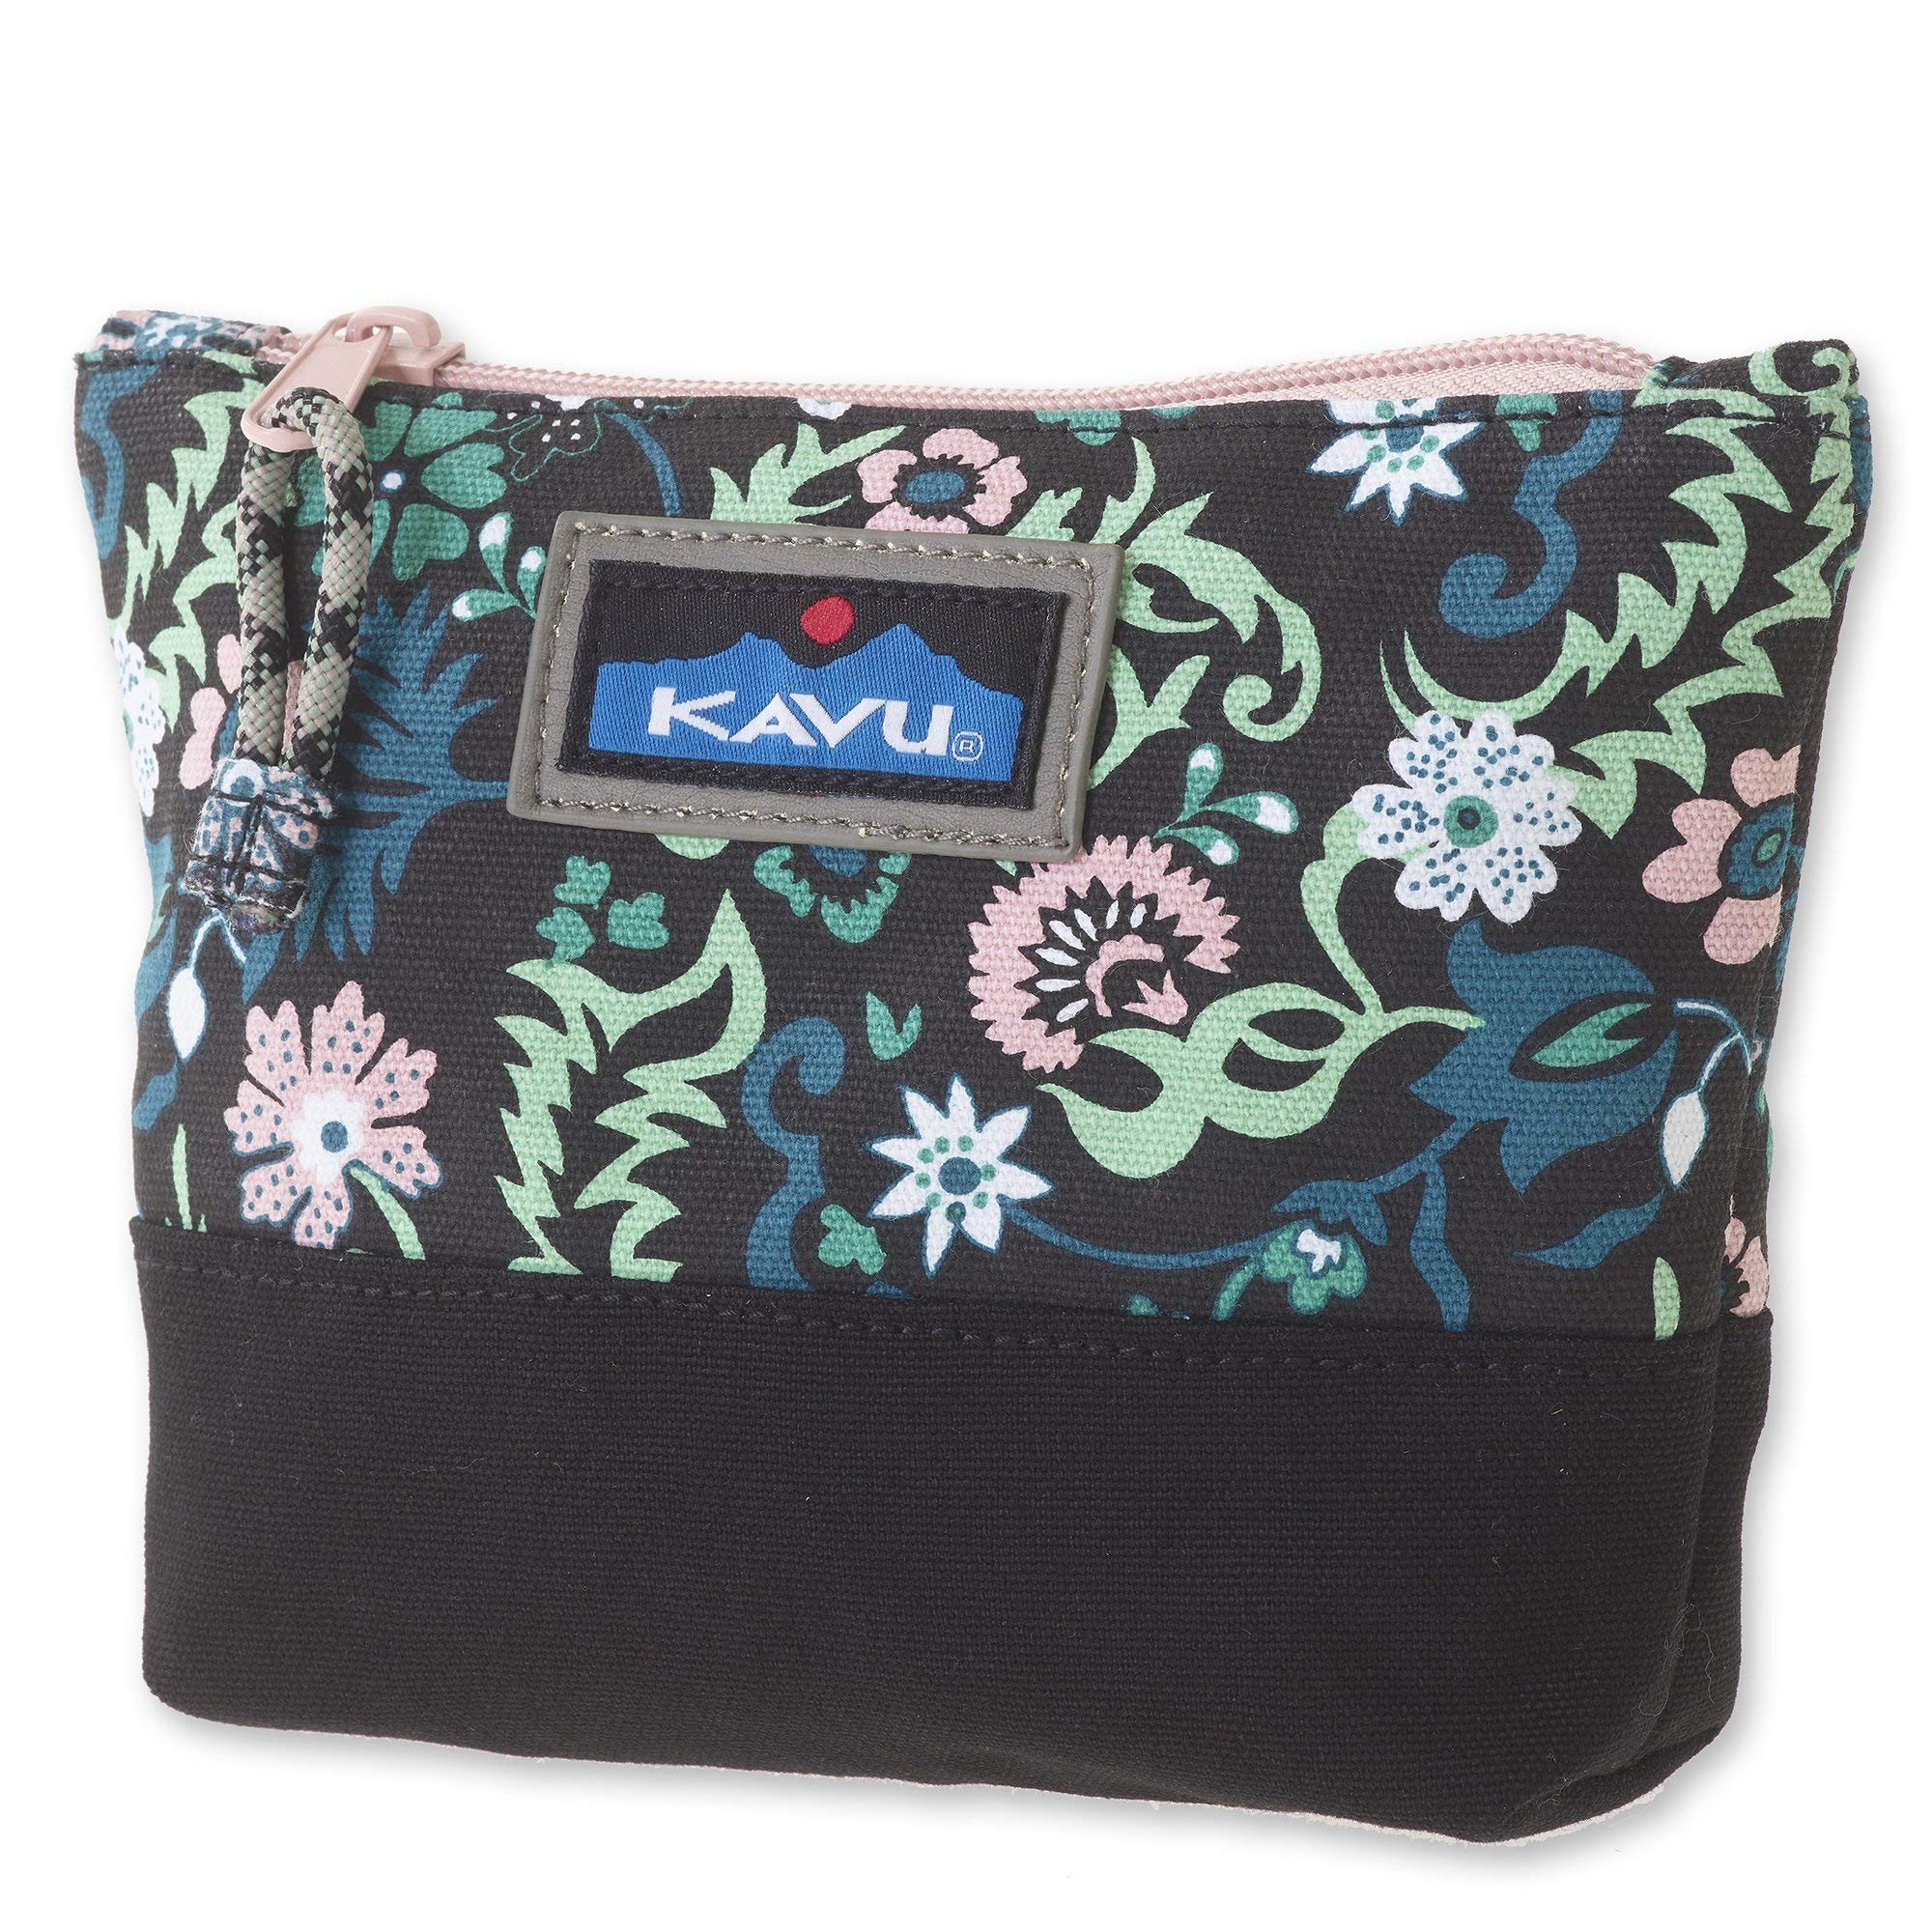 KAVU Quick Zip Accessory Pouch Small Makeup Cosmetic Travel Bag - Whimsical Meadow